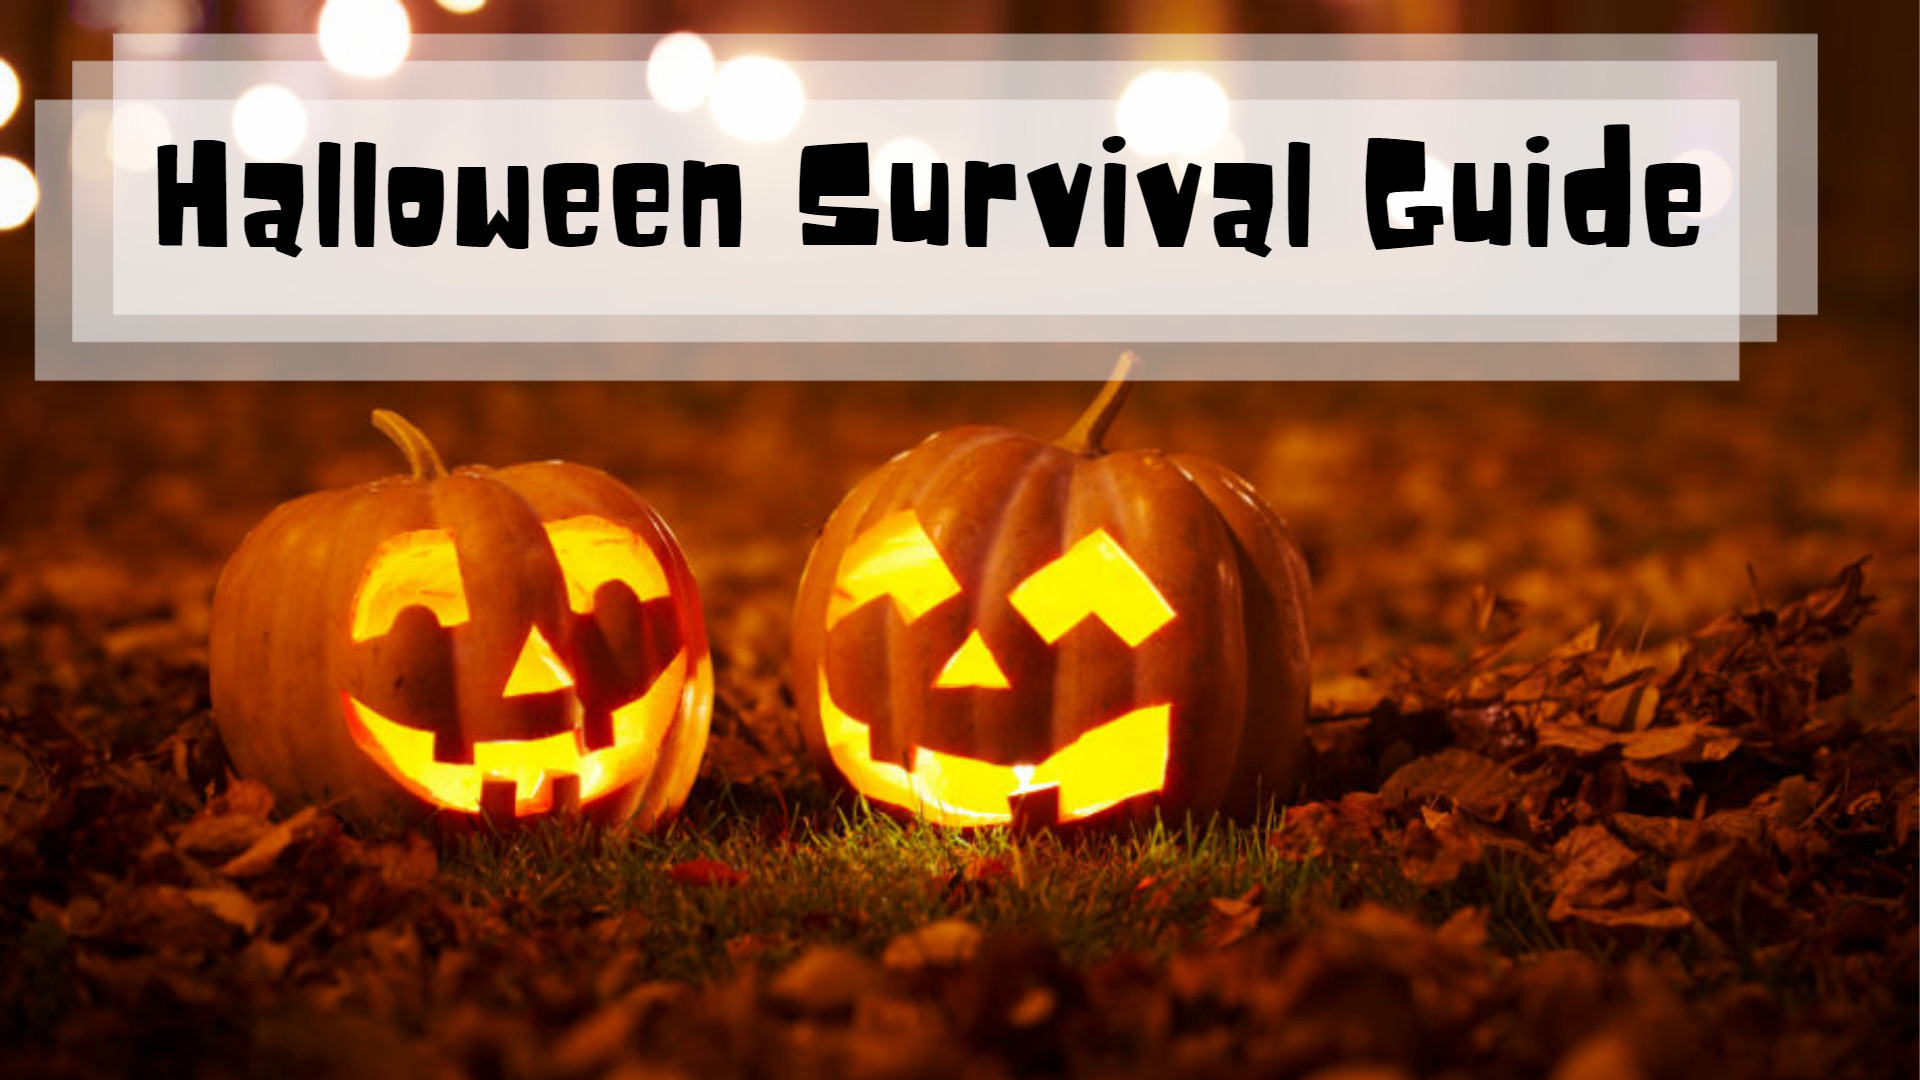 Halloween Survival Guide